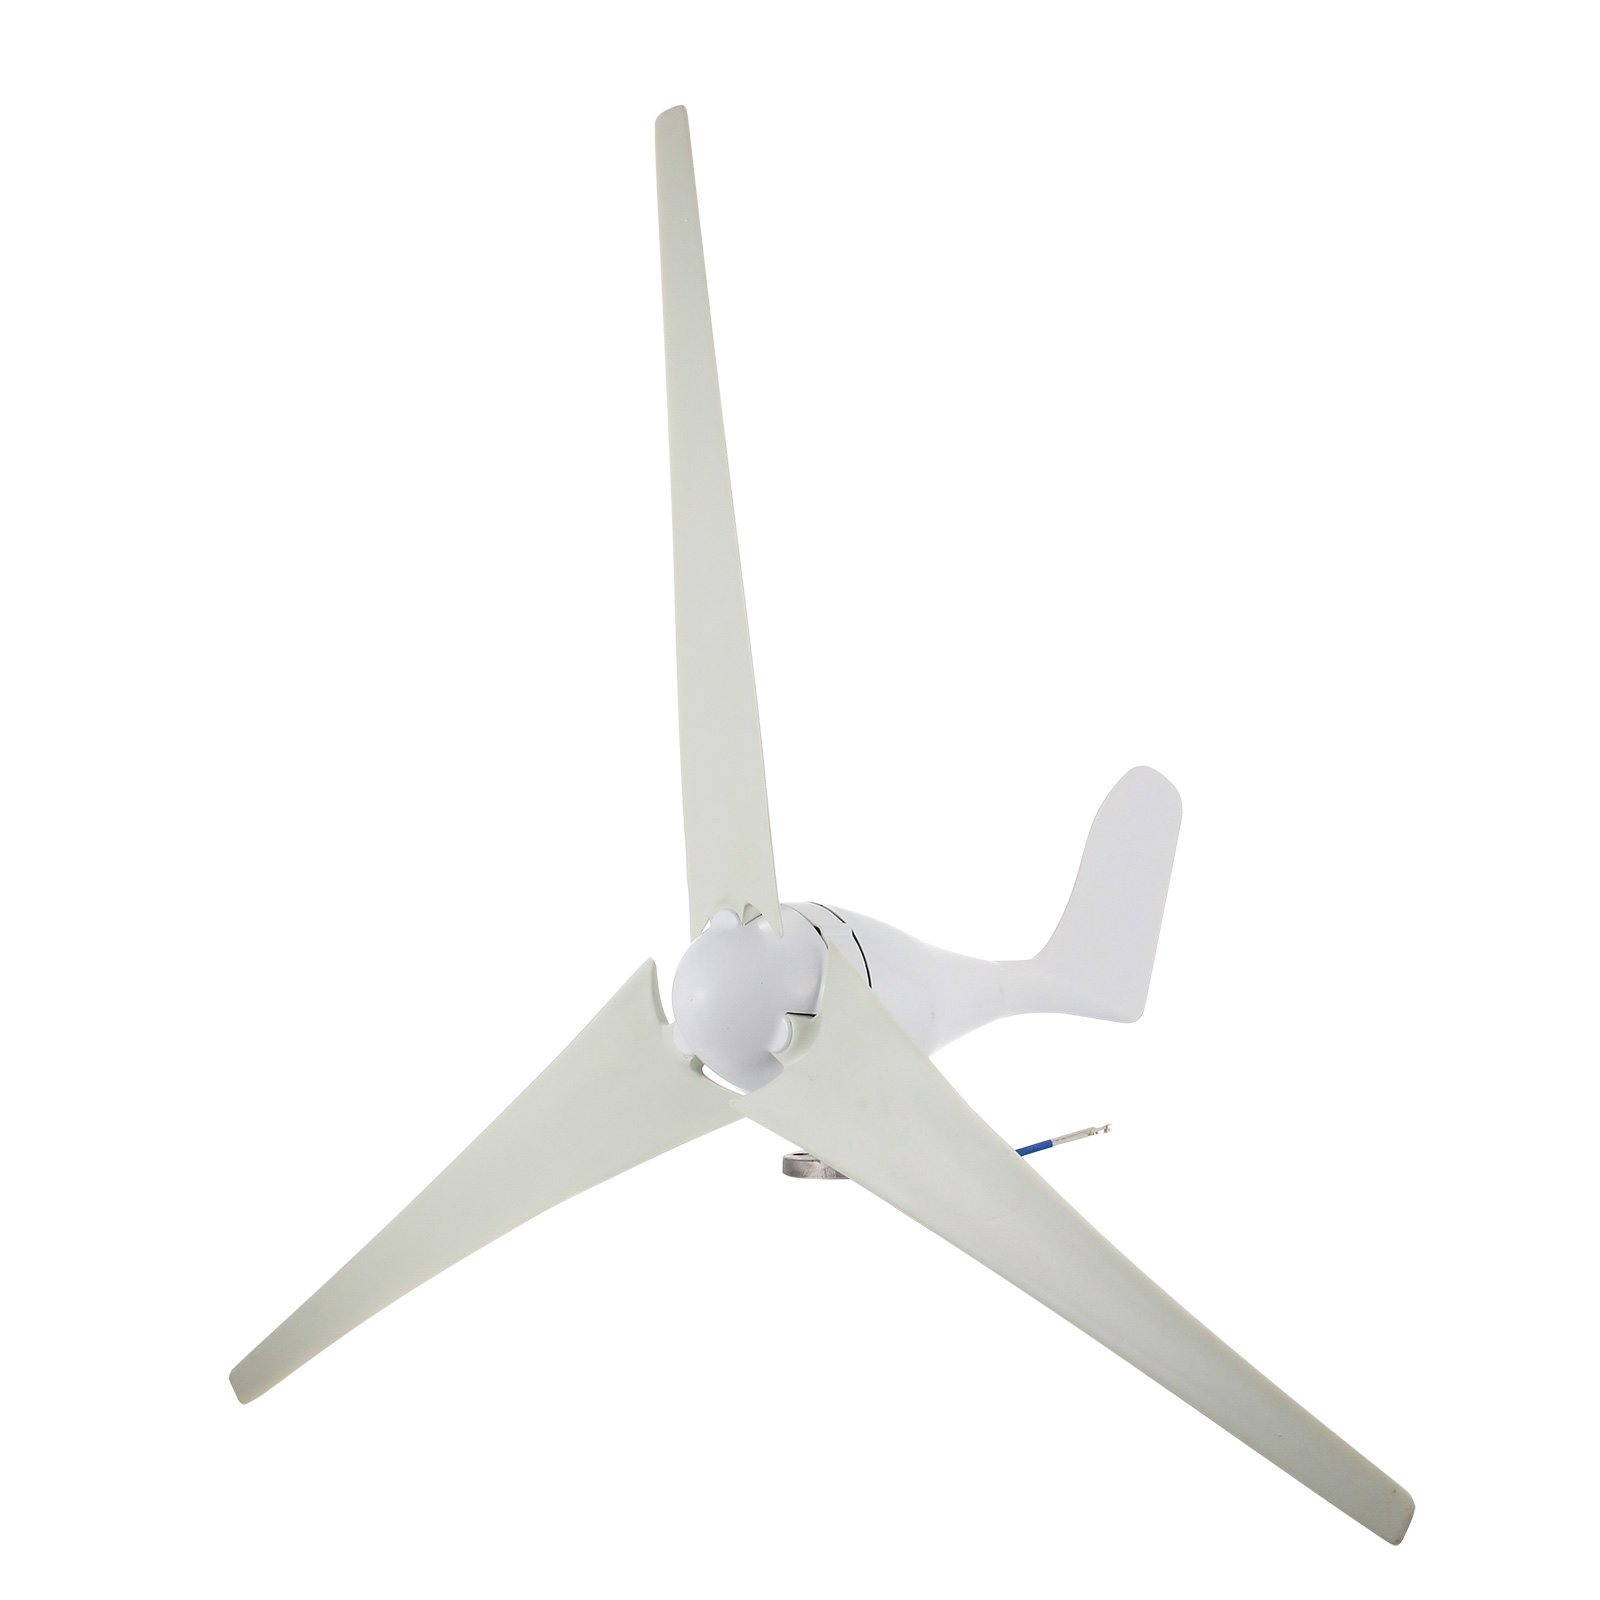 VEVOR Wind Turbine 400Watt Wind Turbine Generator DC 12V Wind Turbine Generator 3/5 Blades with Controller (400Watt)